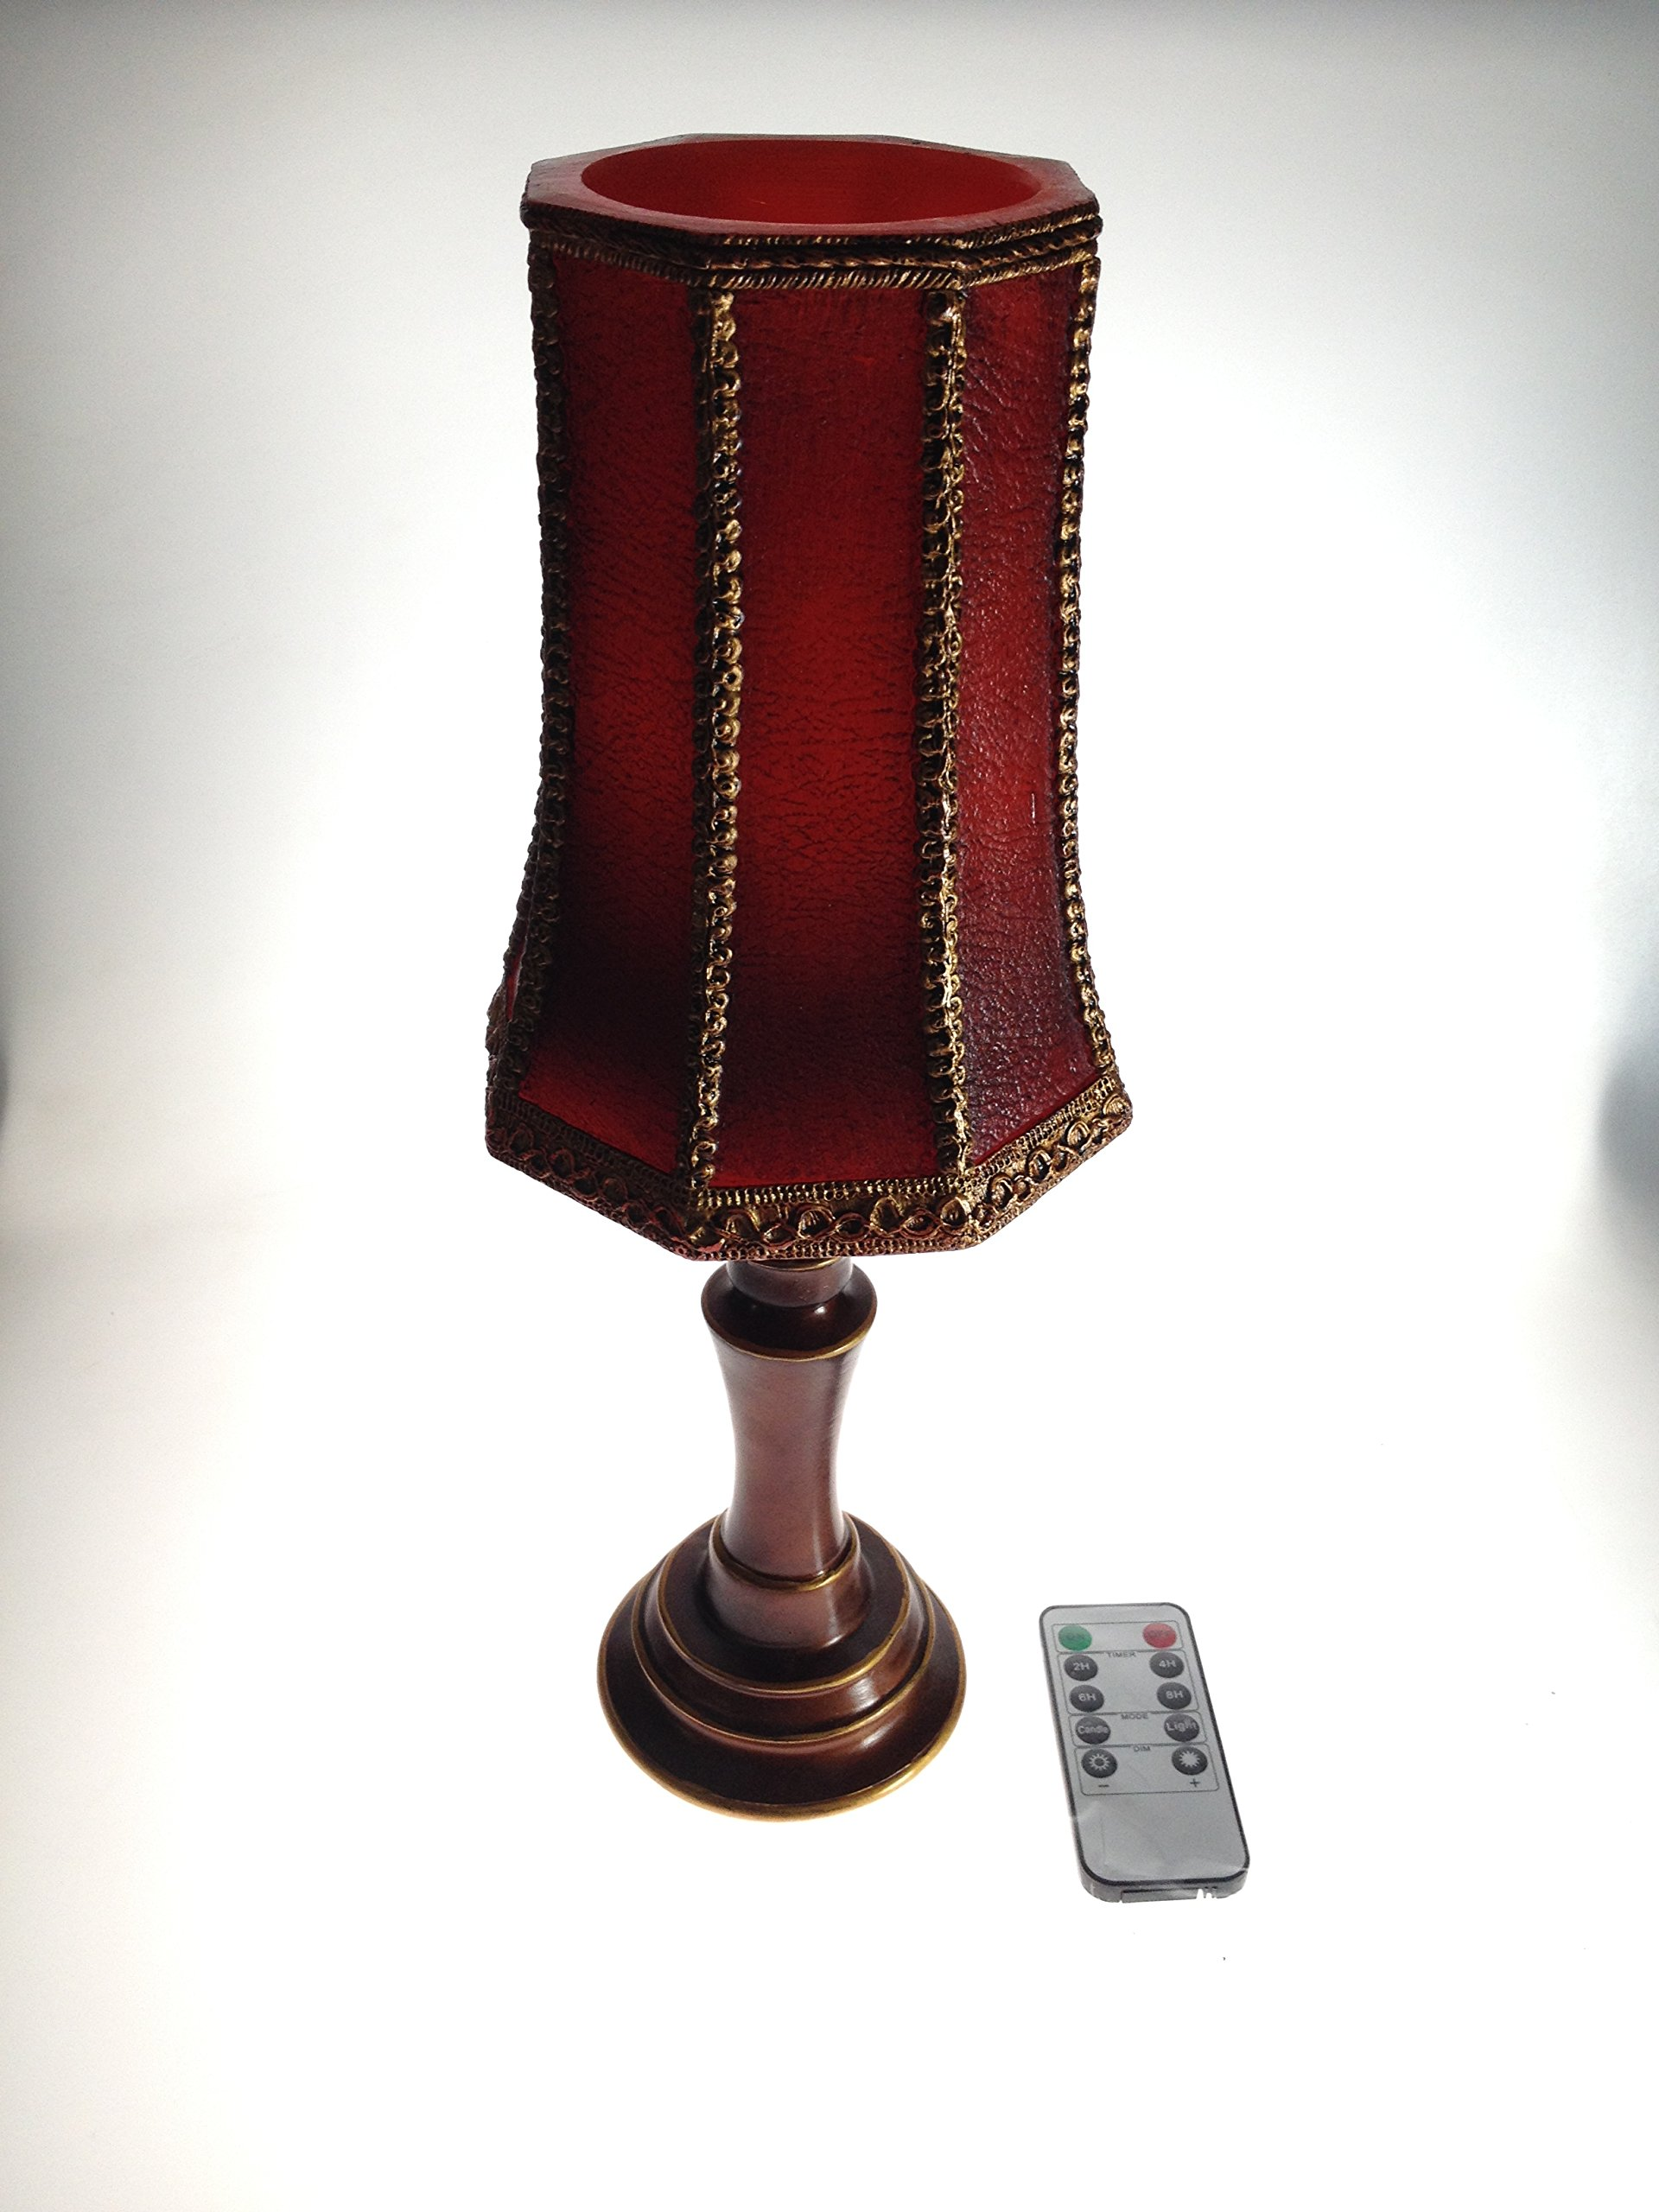 Dark Red & Bronze Lace Led Candle Lamp With Remote Control (14.5''H)